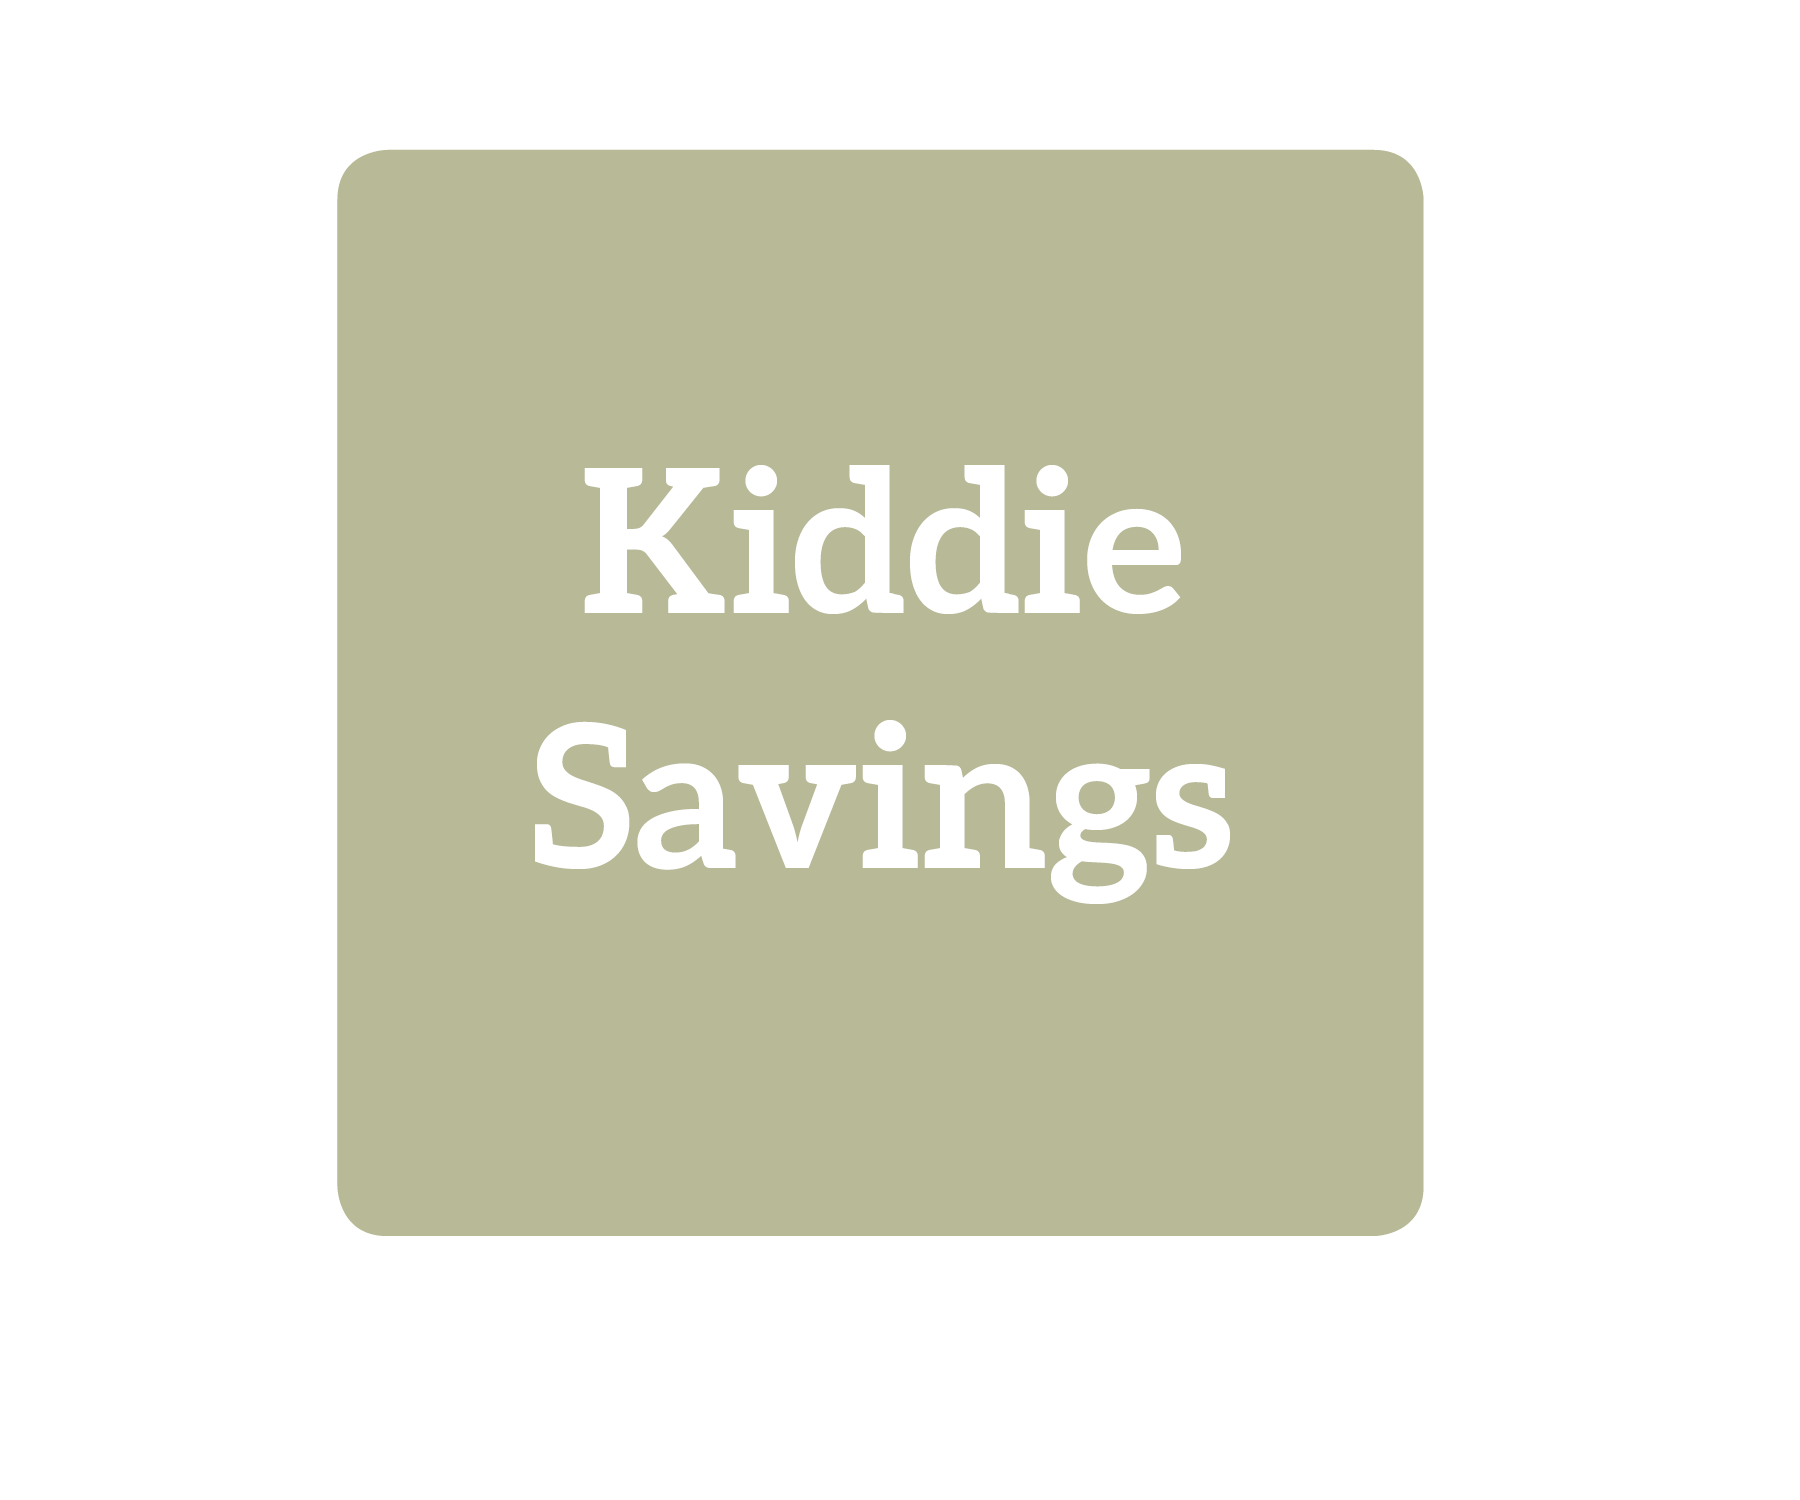 Kiddie Savings